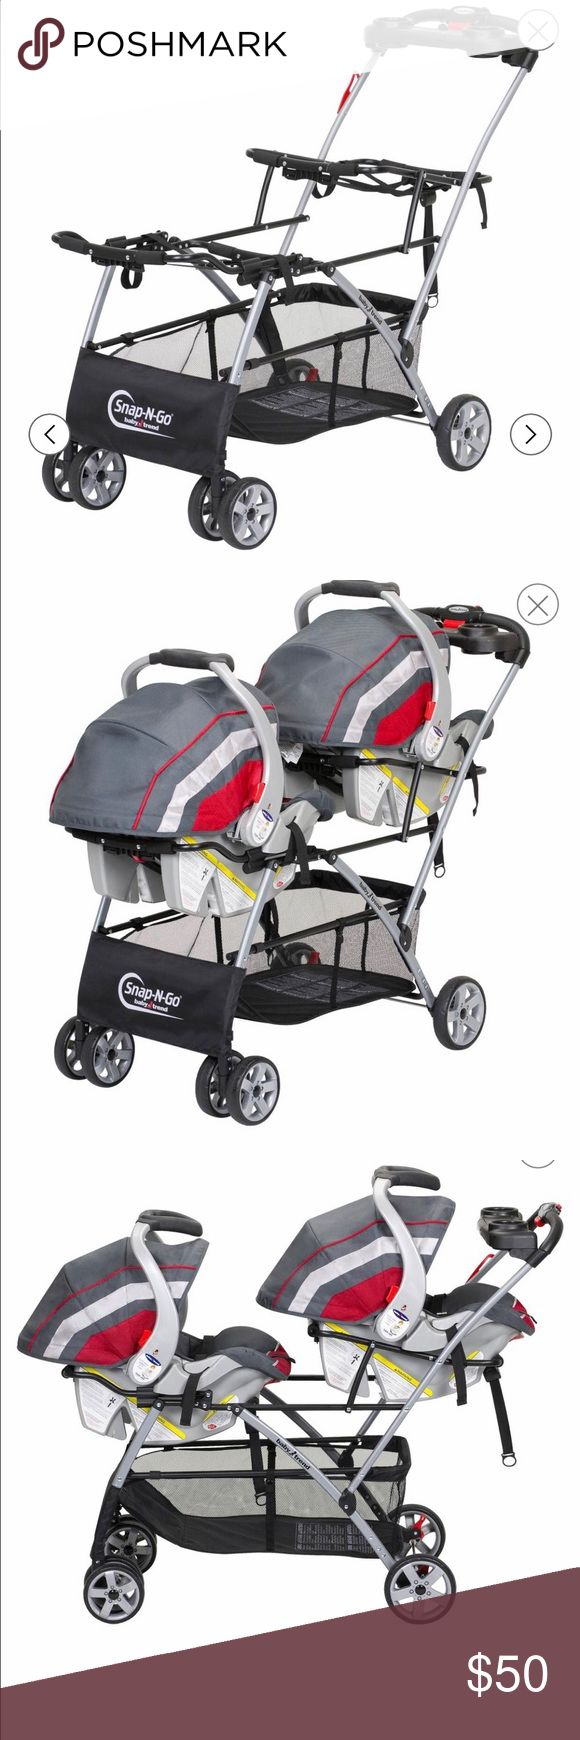 Baby Trend Universal Snap n Go Double(For twins) Double stroller for two babies(snap baby trend and graco infant car seats in this stroller) car seats not included Baby Trend Other